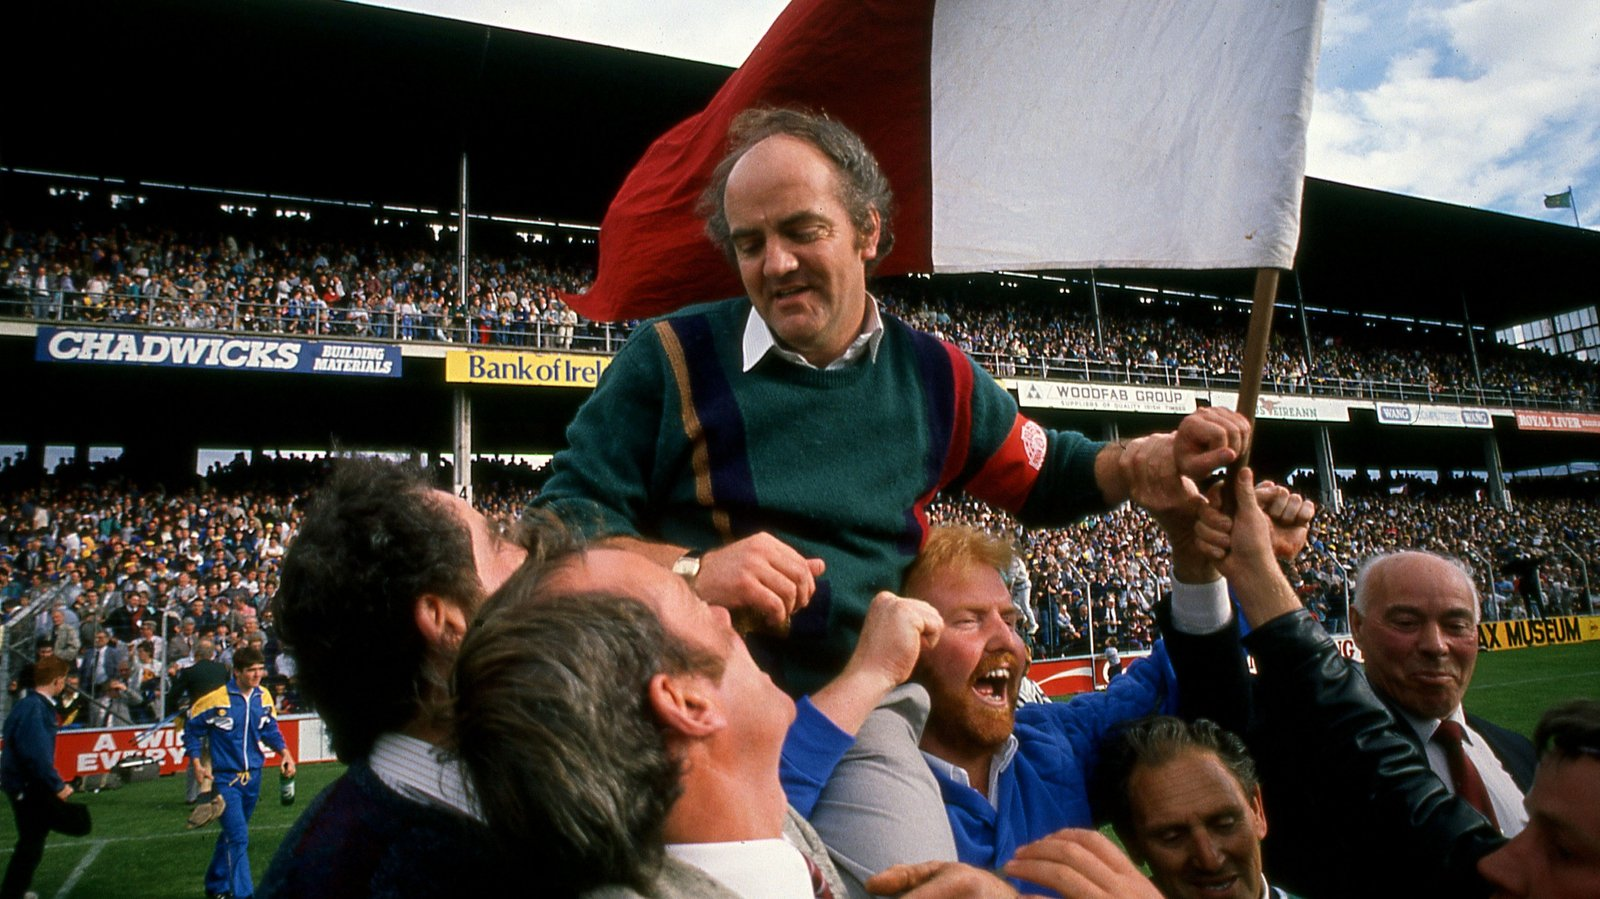 Image - Cyril Farrell is carried by celebrating Galway fans after beating Tipperary in the 1988 All-Ireland